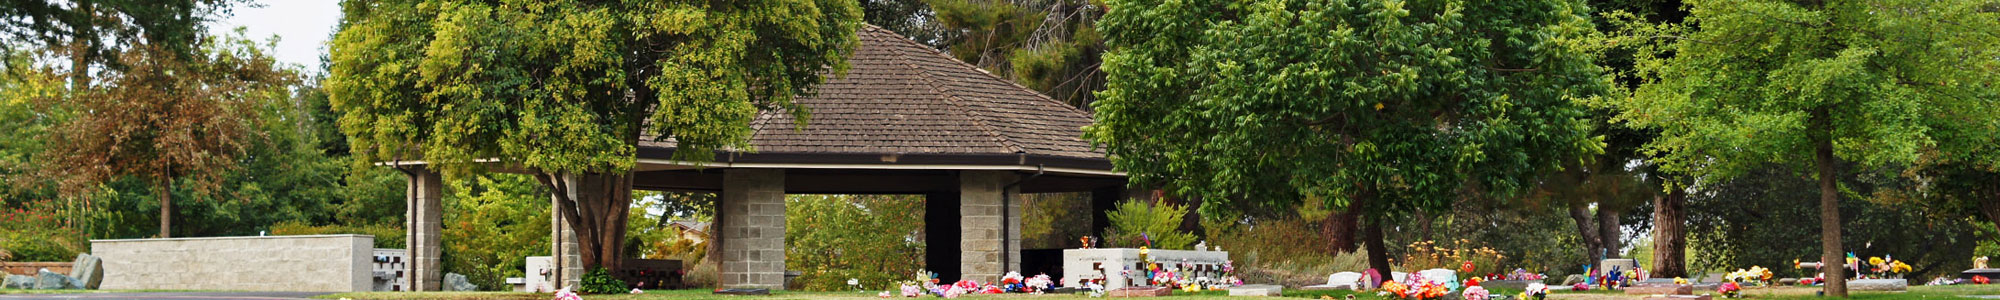 Image of Gazebo taken at Sylvan Cemetery District.